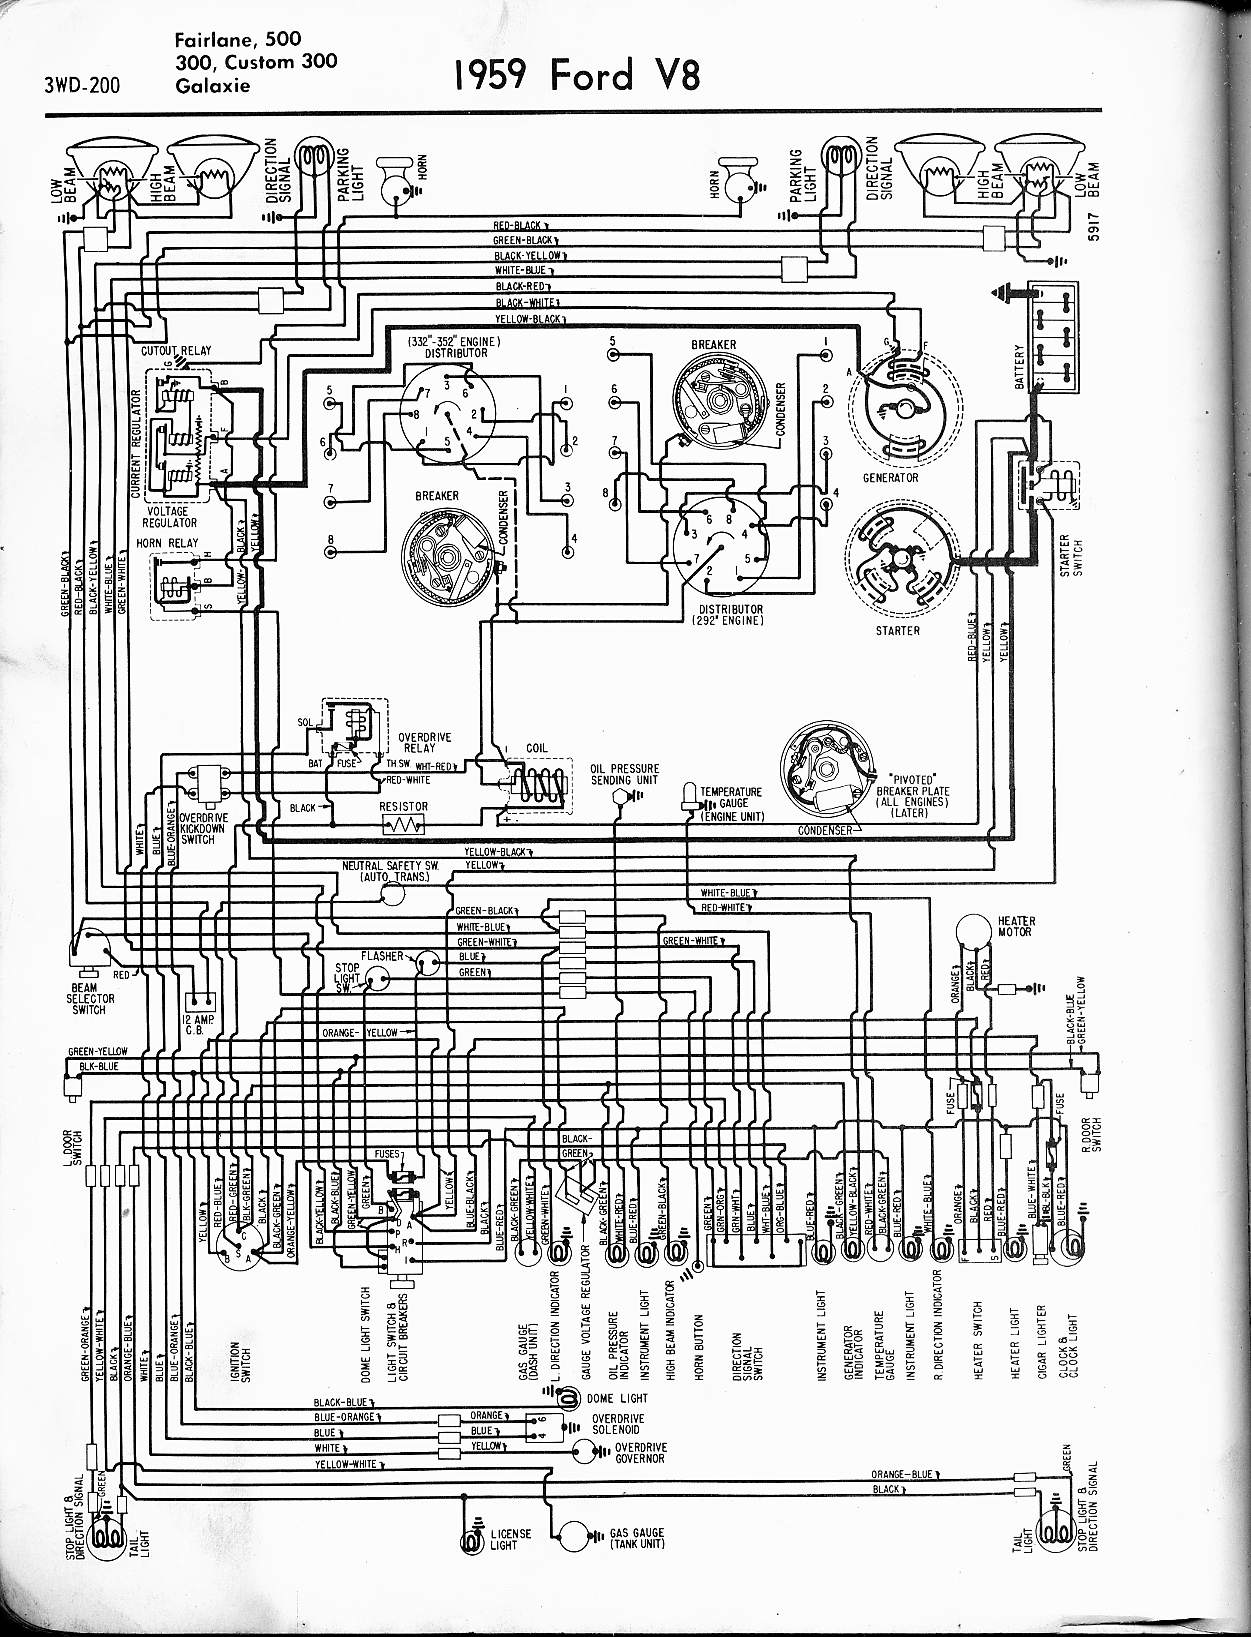 1968 Ford Galaxie Wiring Diagram Schematics Mercruiser Electrical System Diagrams 500 Data